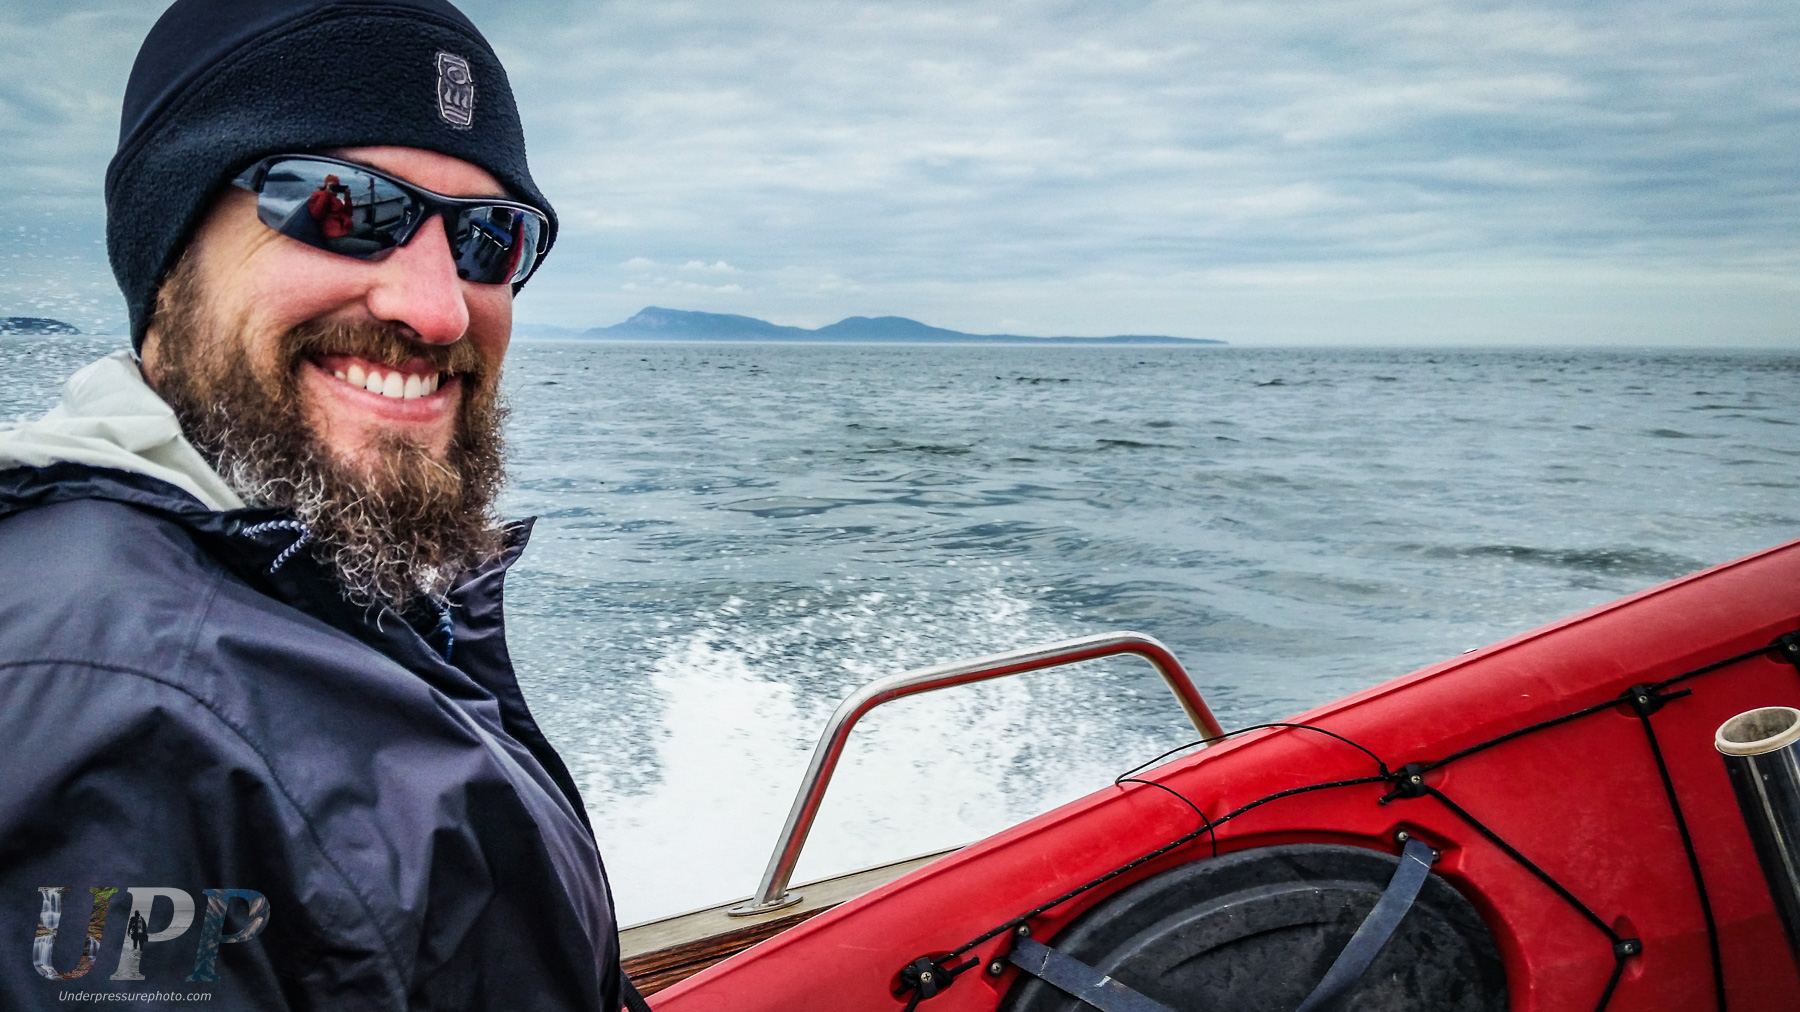 Scott McGee on the way to Sucia Island. Photo by CrtrGrl